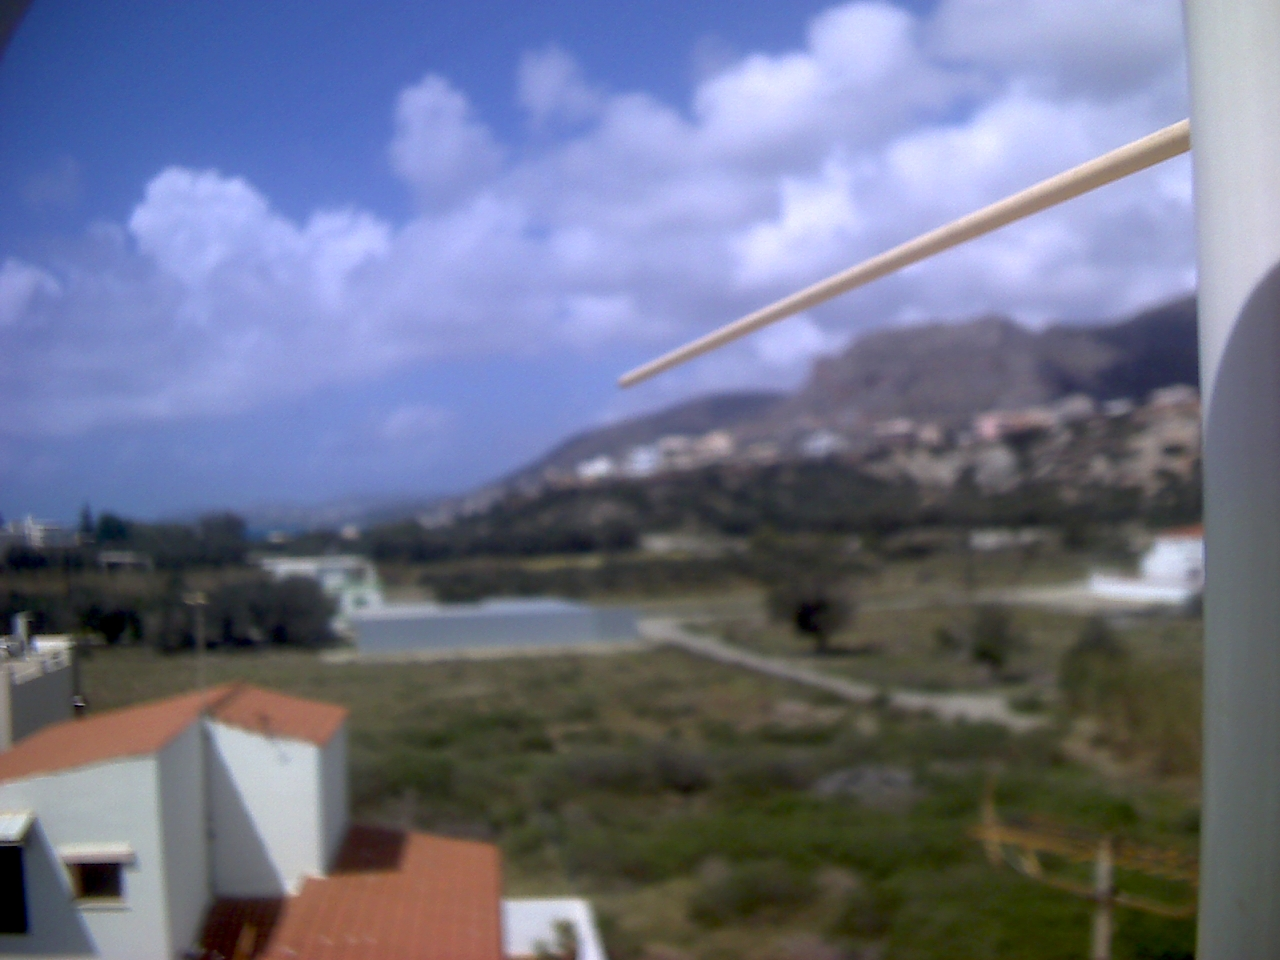 Paleochora webcam - Paleochora West webcam, Crete, Chania